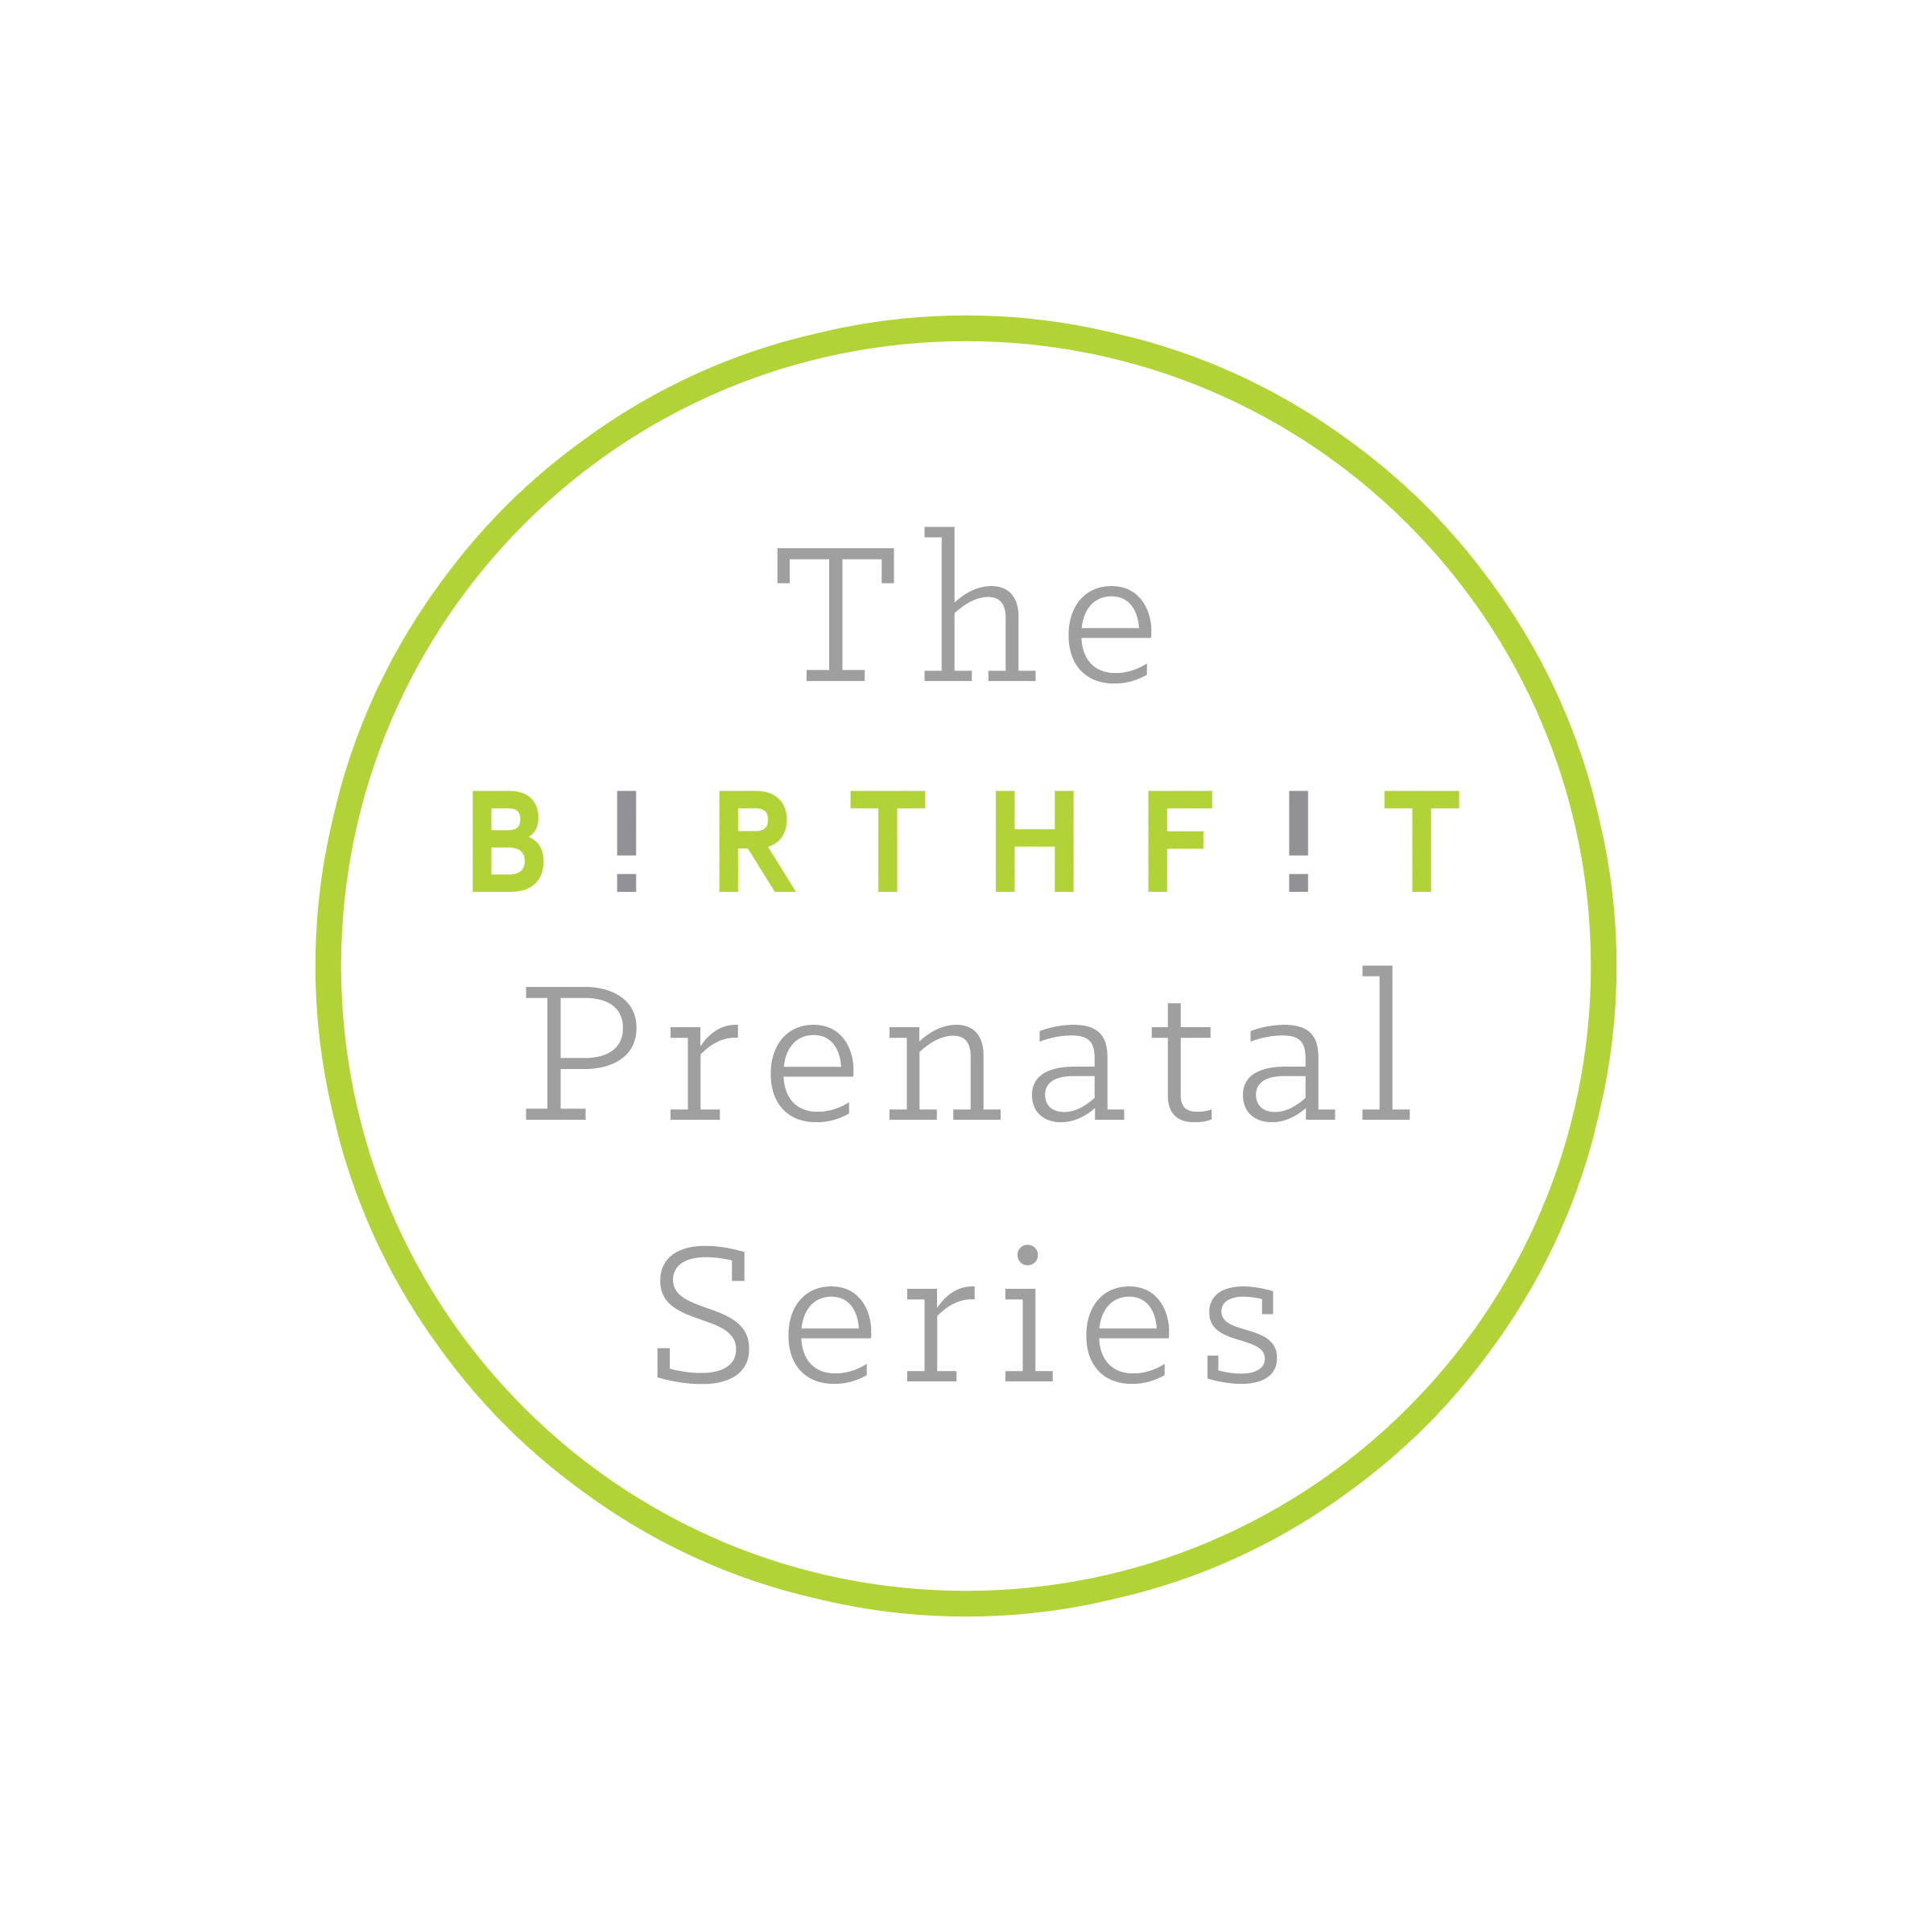 BIRTHFIT Prenatal Series - $209In four 3-hour group sessions, you and your birth partner will become educated and prepared for birth.You will encounter the four pillars of BIRTHFIT: fitness, nutrition, mindset, and connection.You will experience functional mobility, natural movement, and breath work.You will discover your own birth desires and design your personal Queen in Training postpartum plan.This is a comprehensive childbirth education class for Mom and Partner.Check out the calendar for upcoming classes. Private classes are available. Please email us at birthfitmarquette@gmail.com to inquire.REGISTER